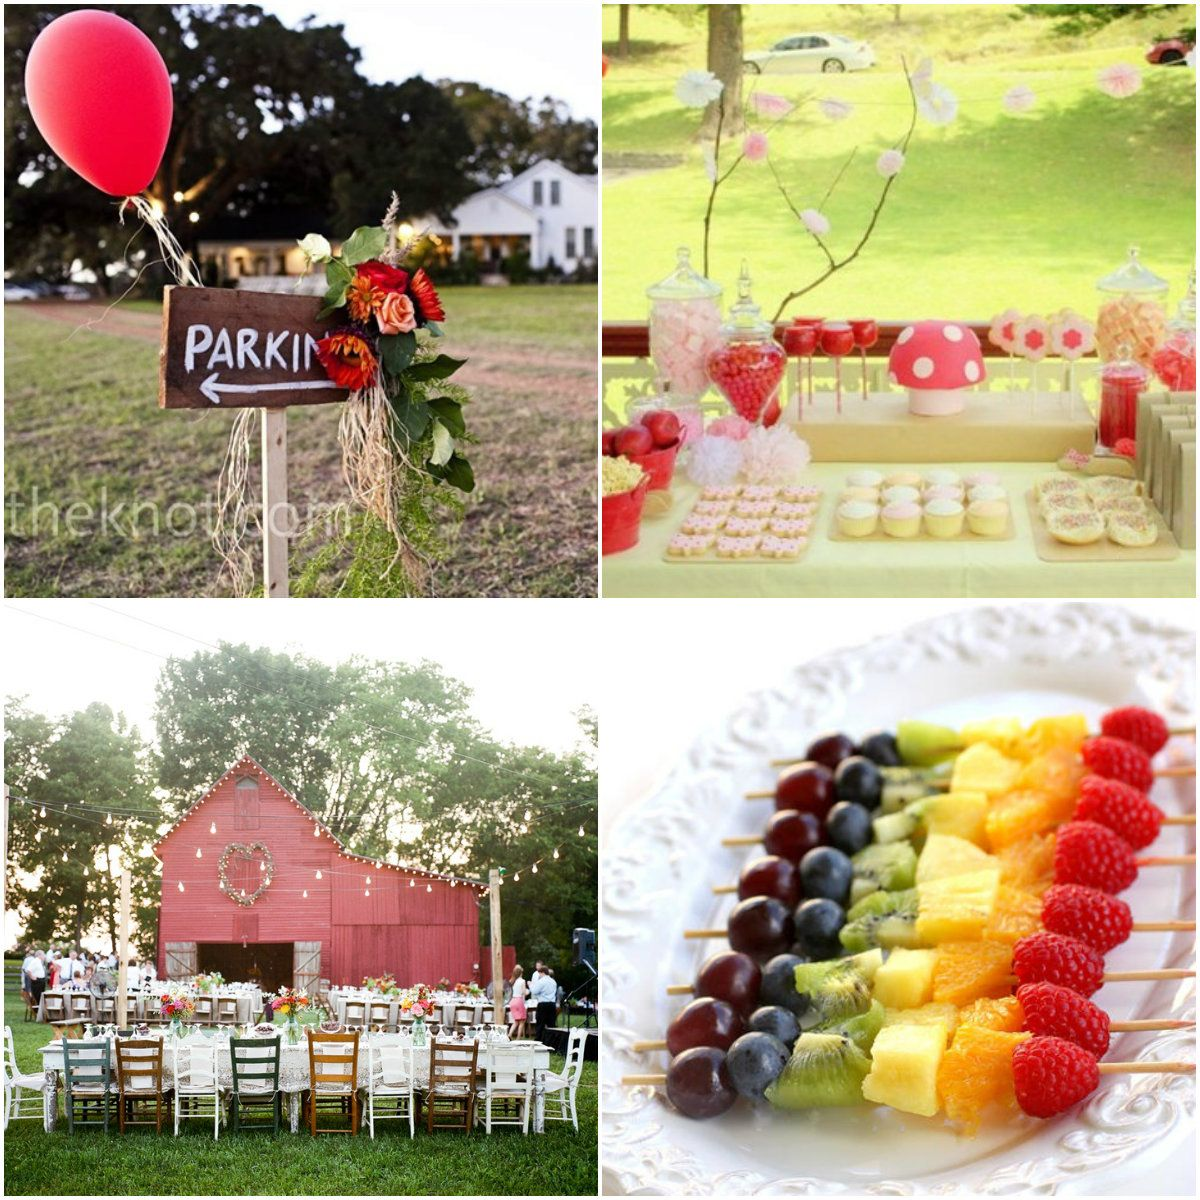 18th birthday garden party decorations party ideas for 18 birthday decoration ideas